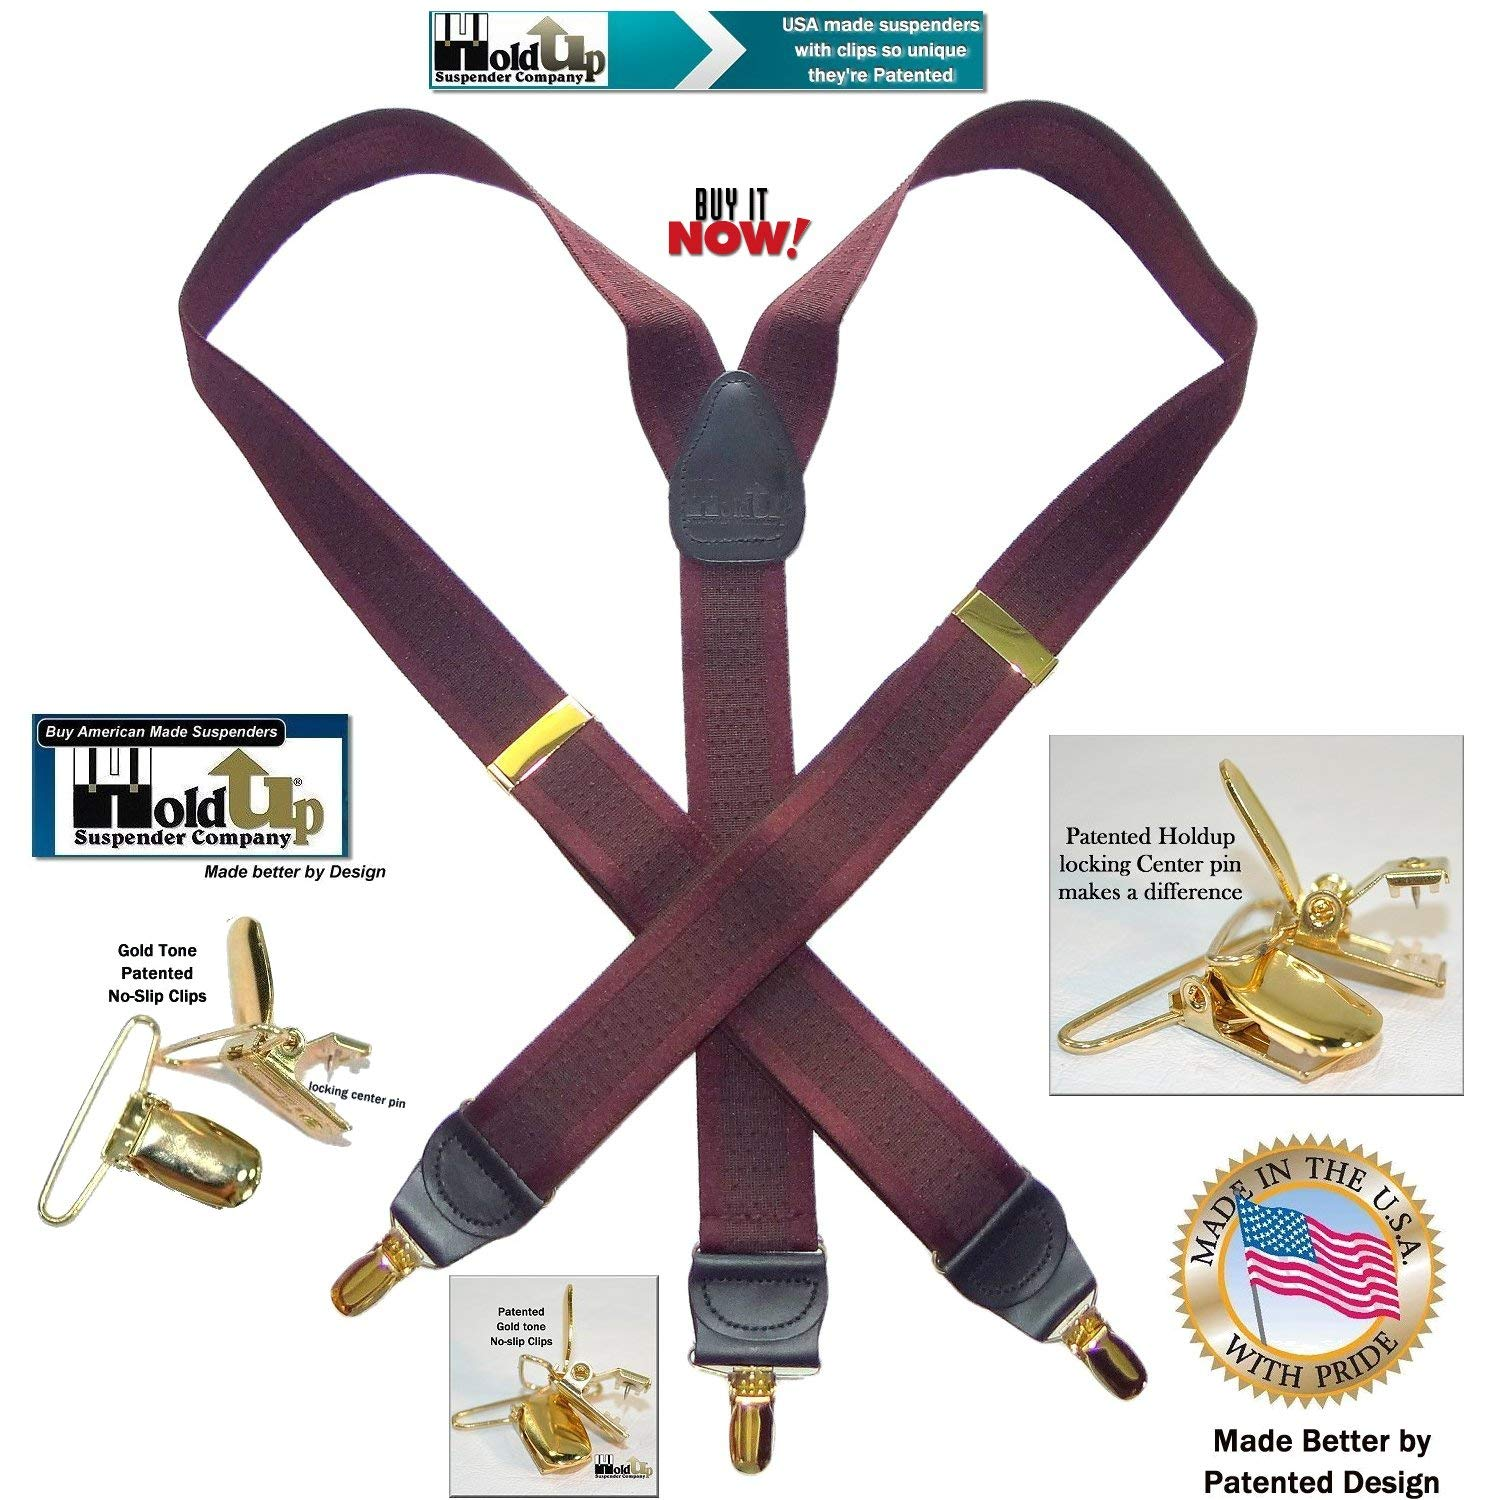 Holdup Brand American made Cordovan Burgundy Y-back suspenders with Tone-on-Tone Jacquard Weave and Gold-tone No-Slip clips Holdup Suspender Company Inc 3001YG